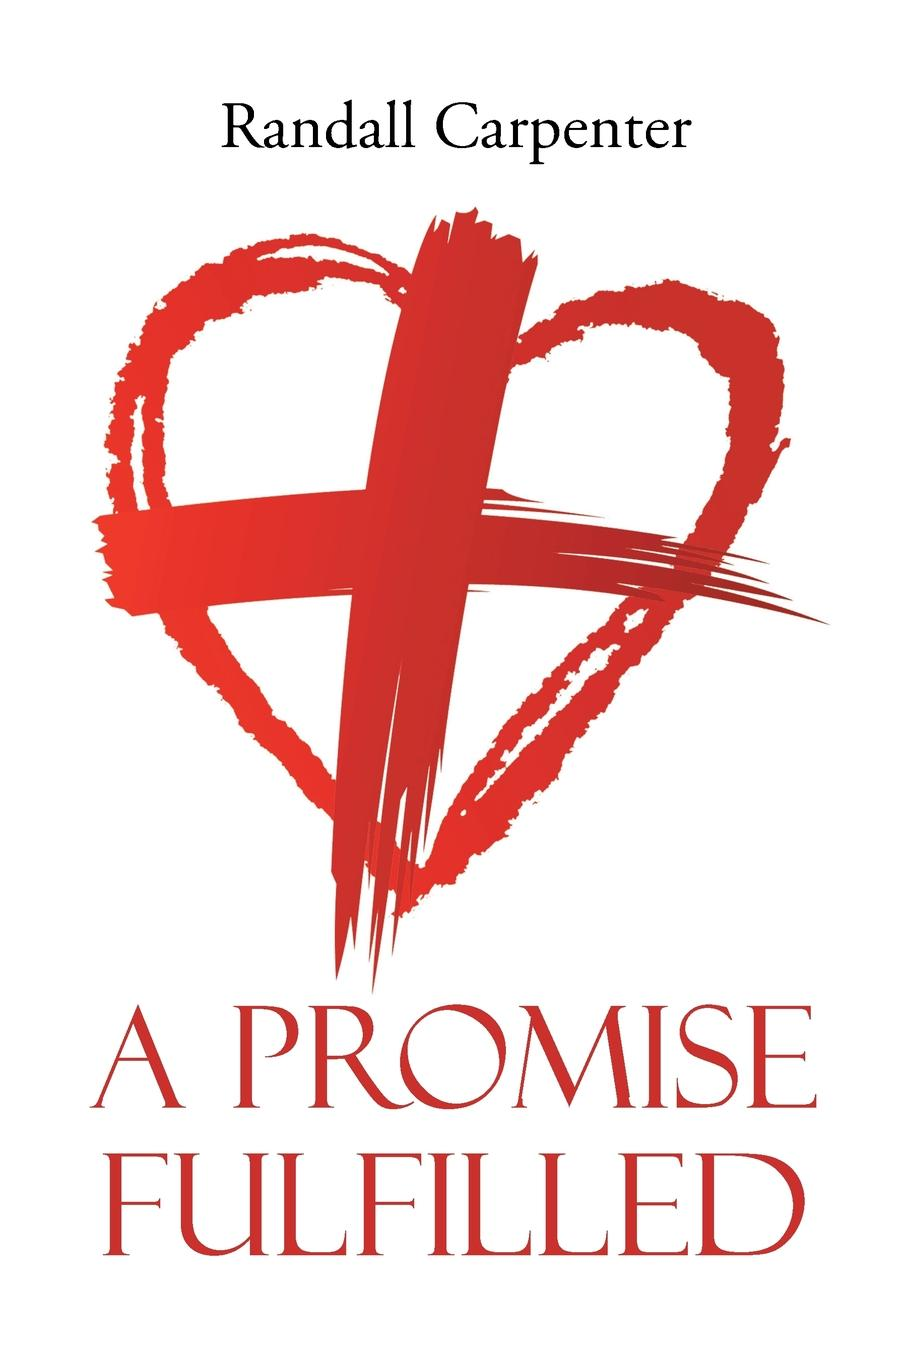 Randall Carpenter A Promise Fulfilled joe l lewis essence of the christian journey faith hope and love these three